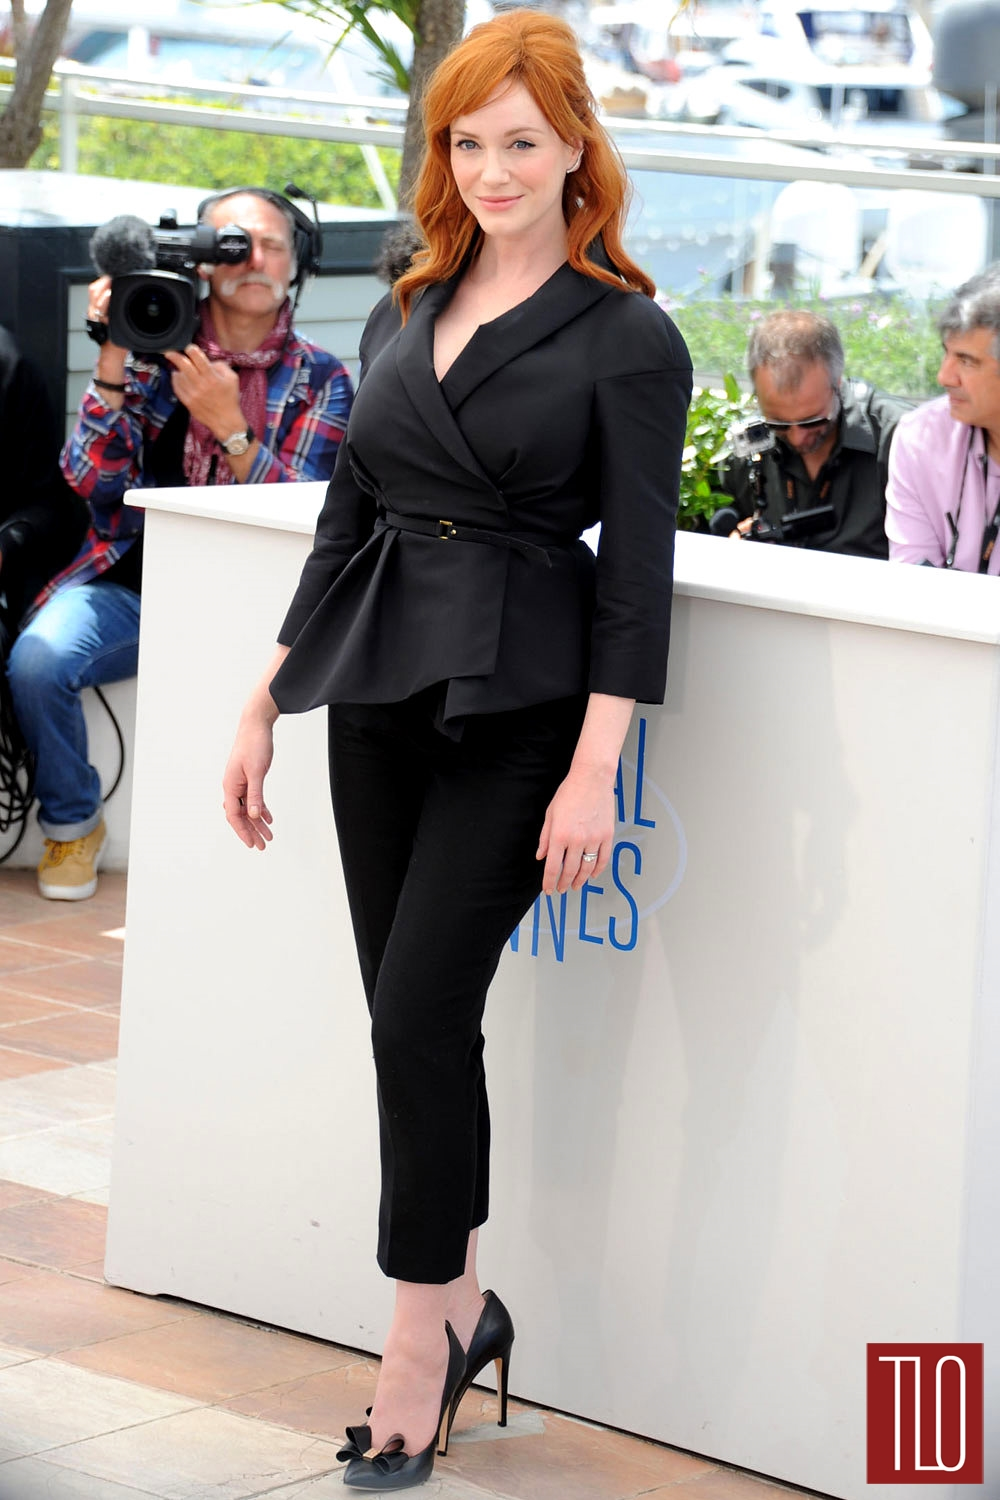 Christina-Hendricks-Christian-Dior-Lost-River-Photocall-Cannes-2014-Tom-Lorenzo-Site-TLO (1)